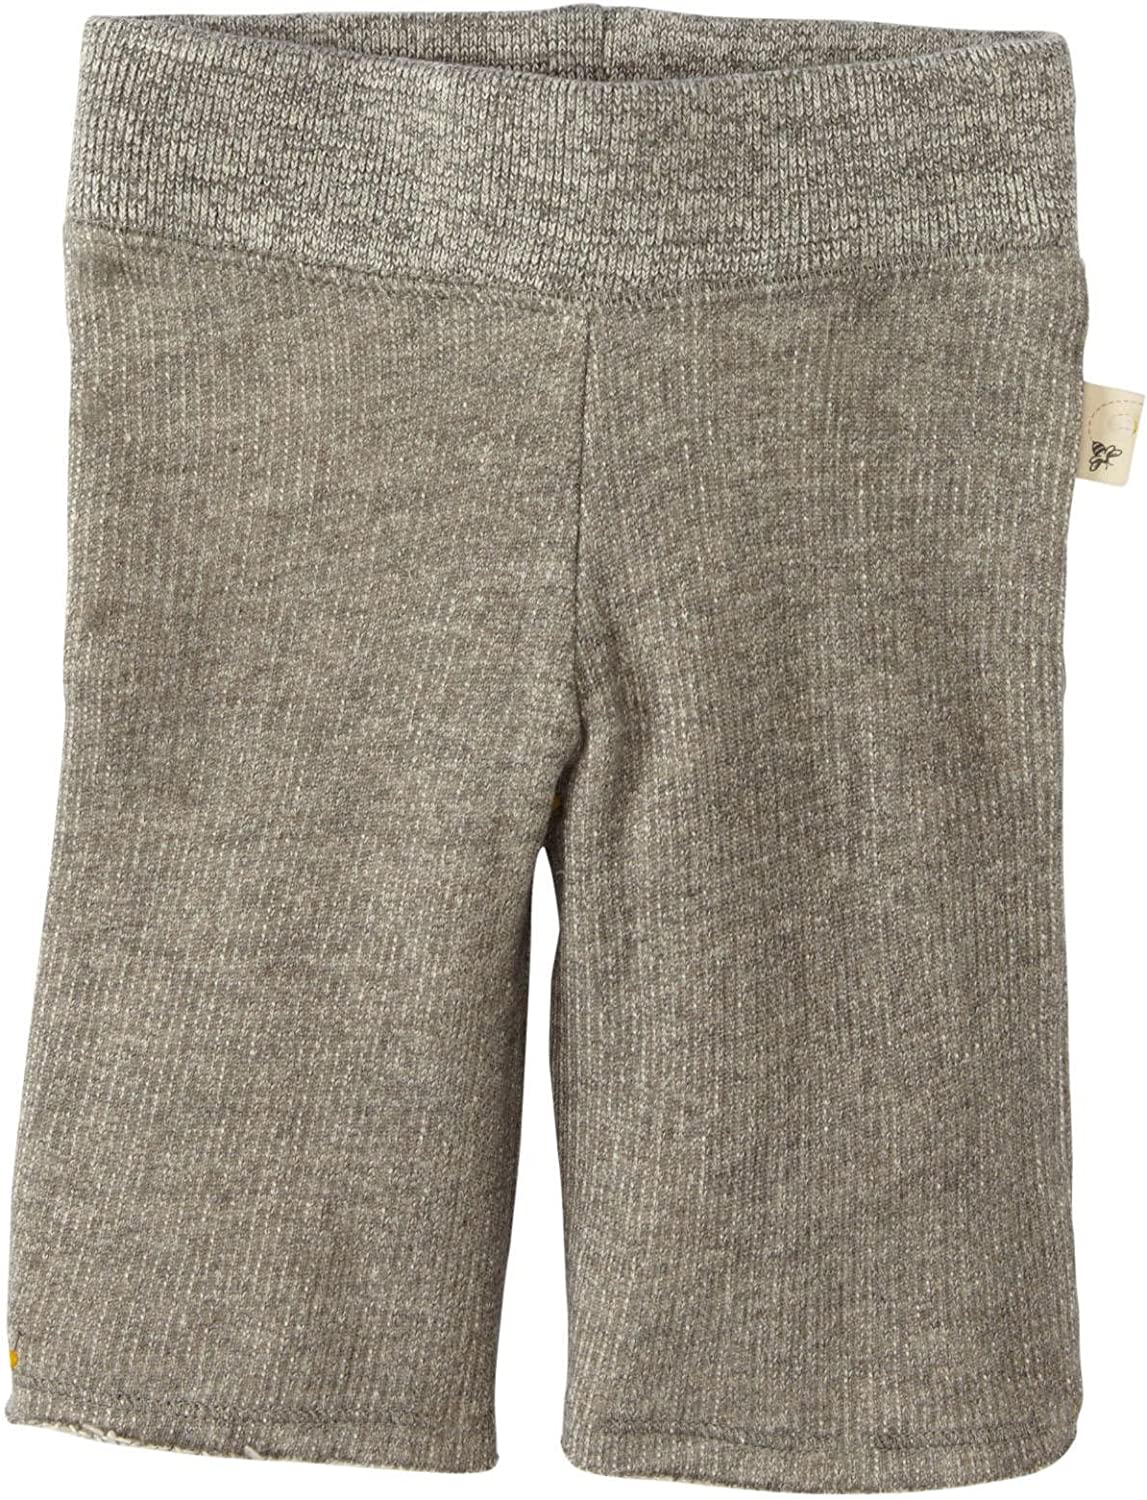 Burt's Bees Baby Baby Girls' Loose Terry Pant (Baby) - Heather Grey - 0-3 Months